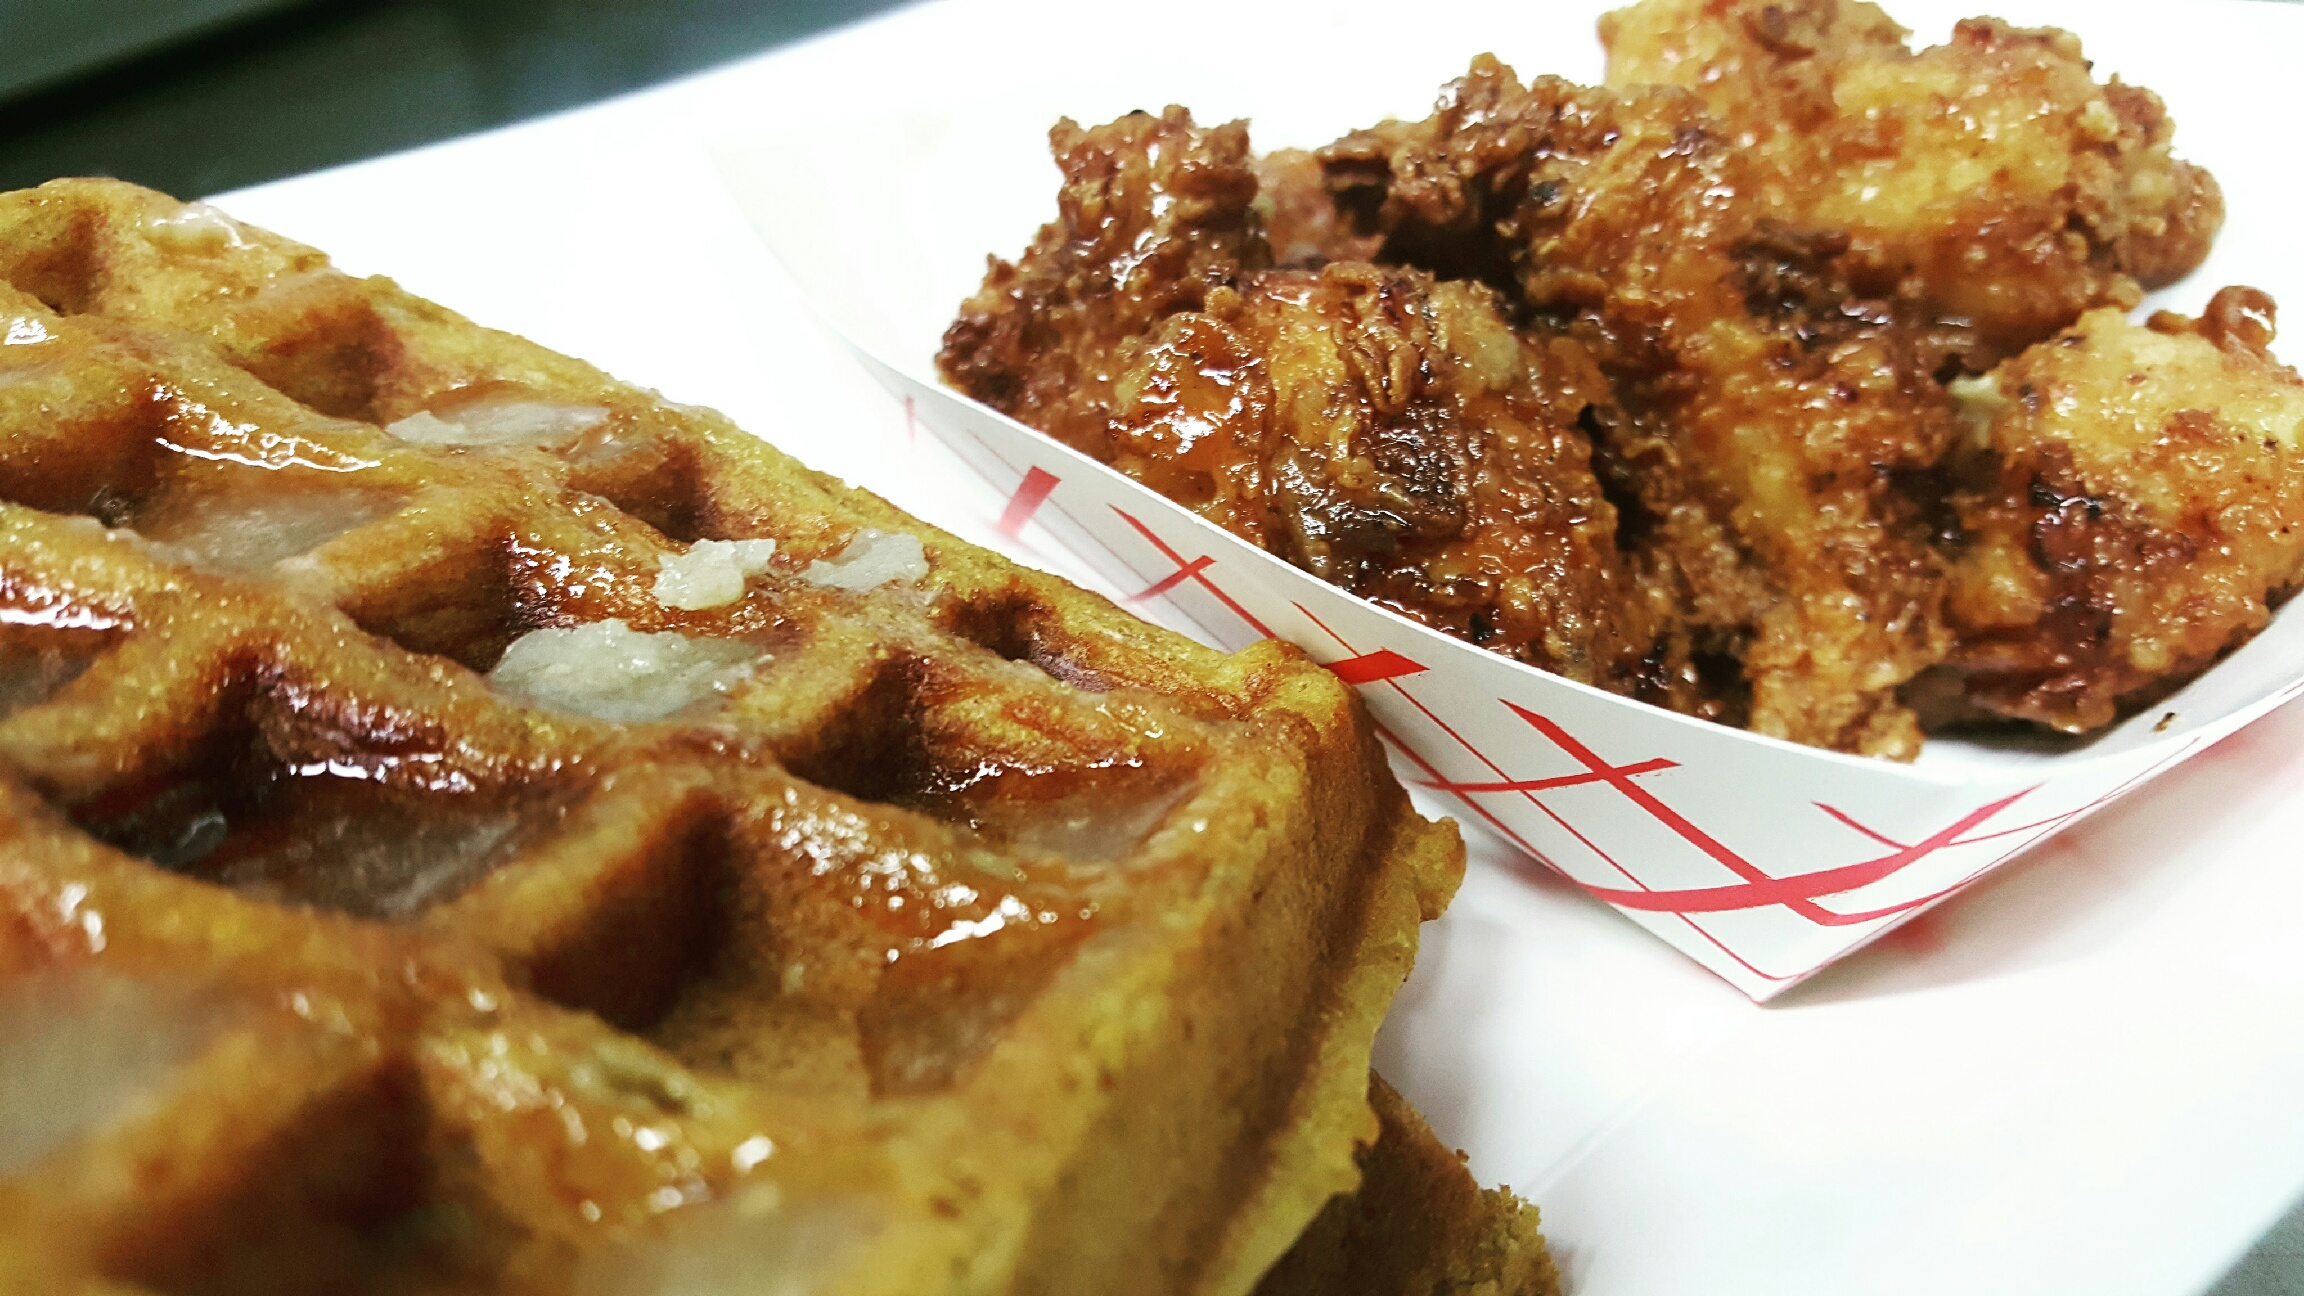 STUF'D Chicken and Waffles